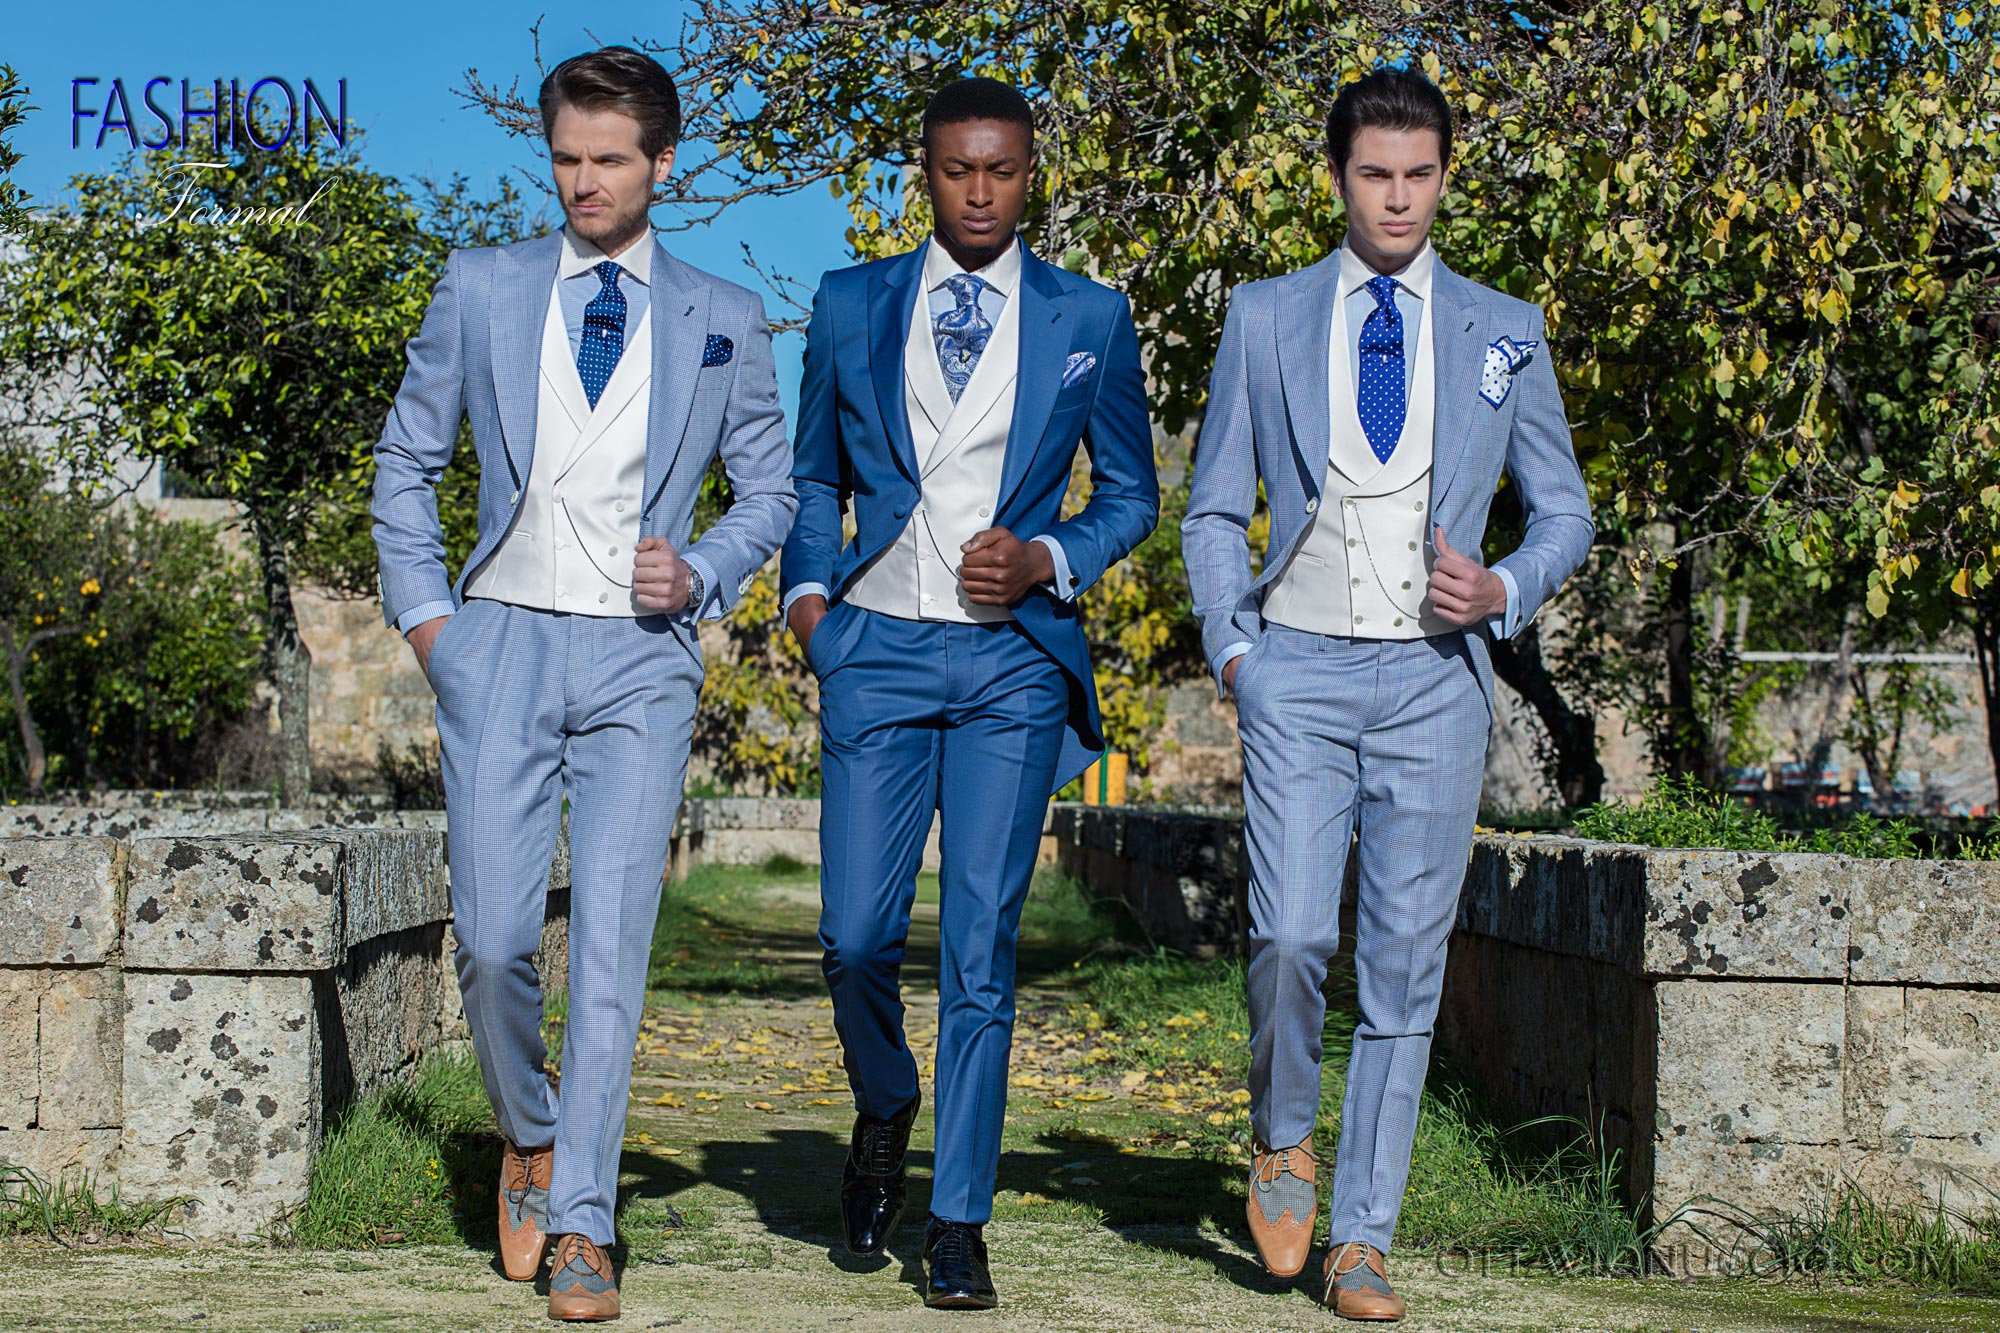 Italian Wedding Suits | Italian Tuxedos - Ottavio Nuccio Gala